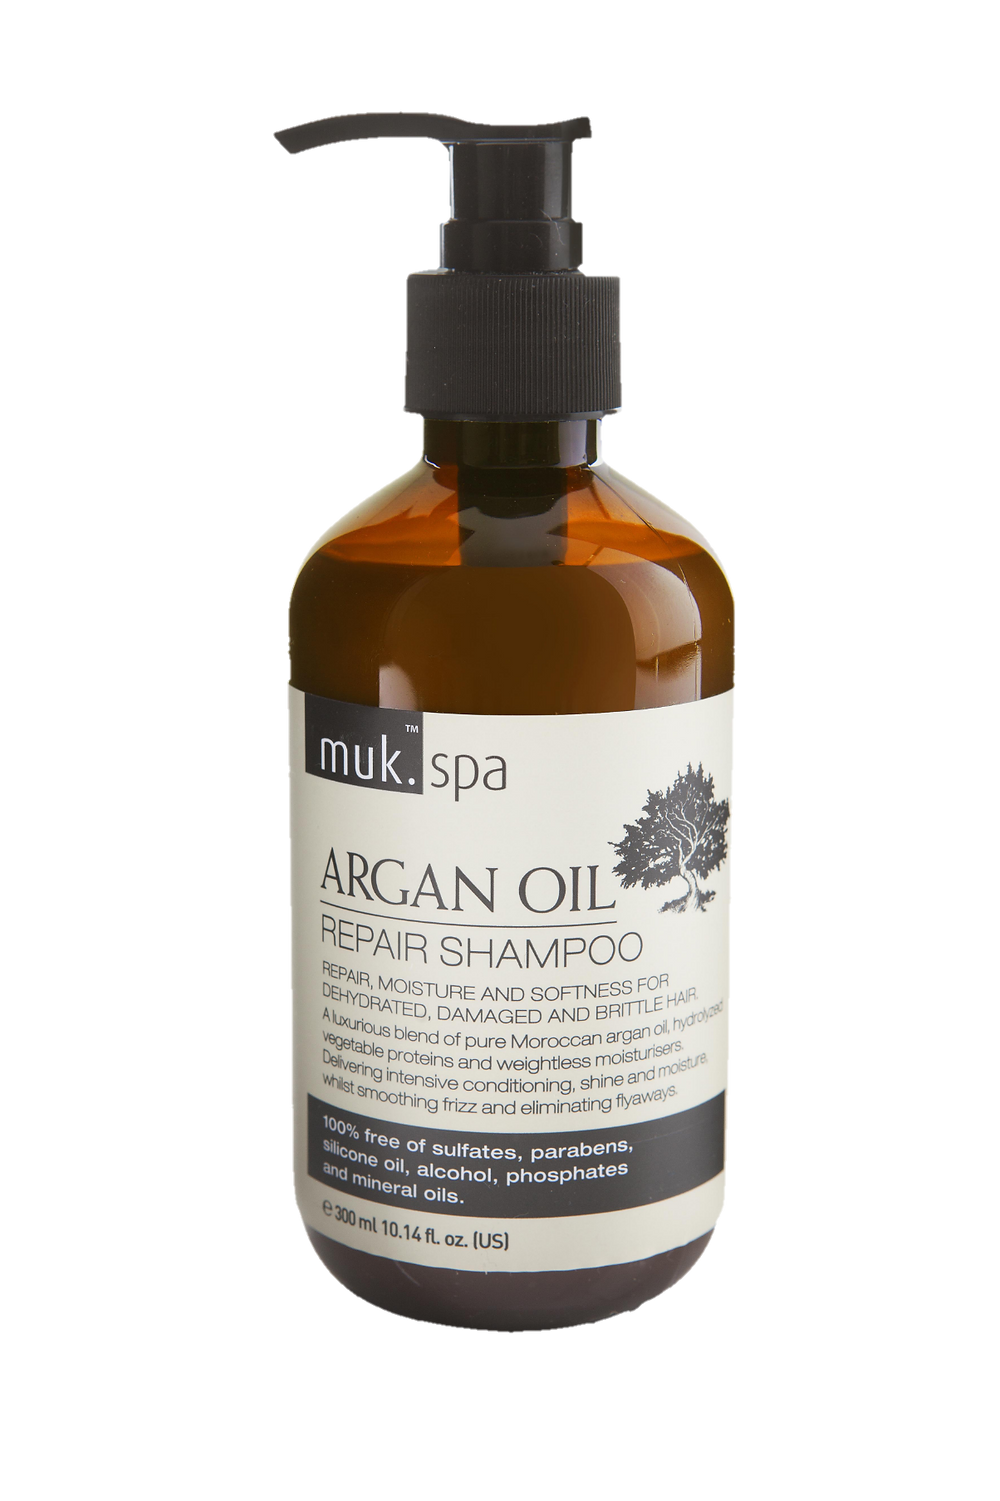 muk.spa Argan Oil Repair Shampoo